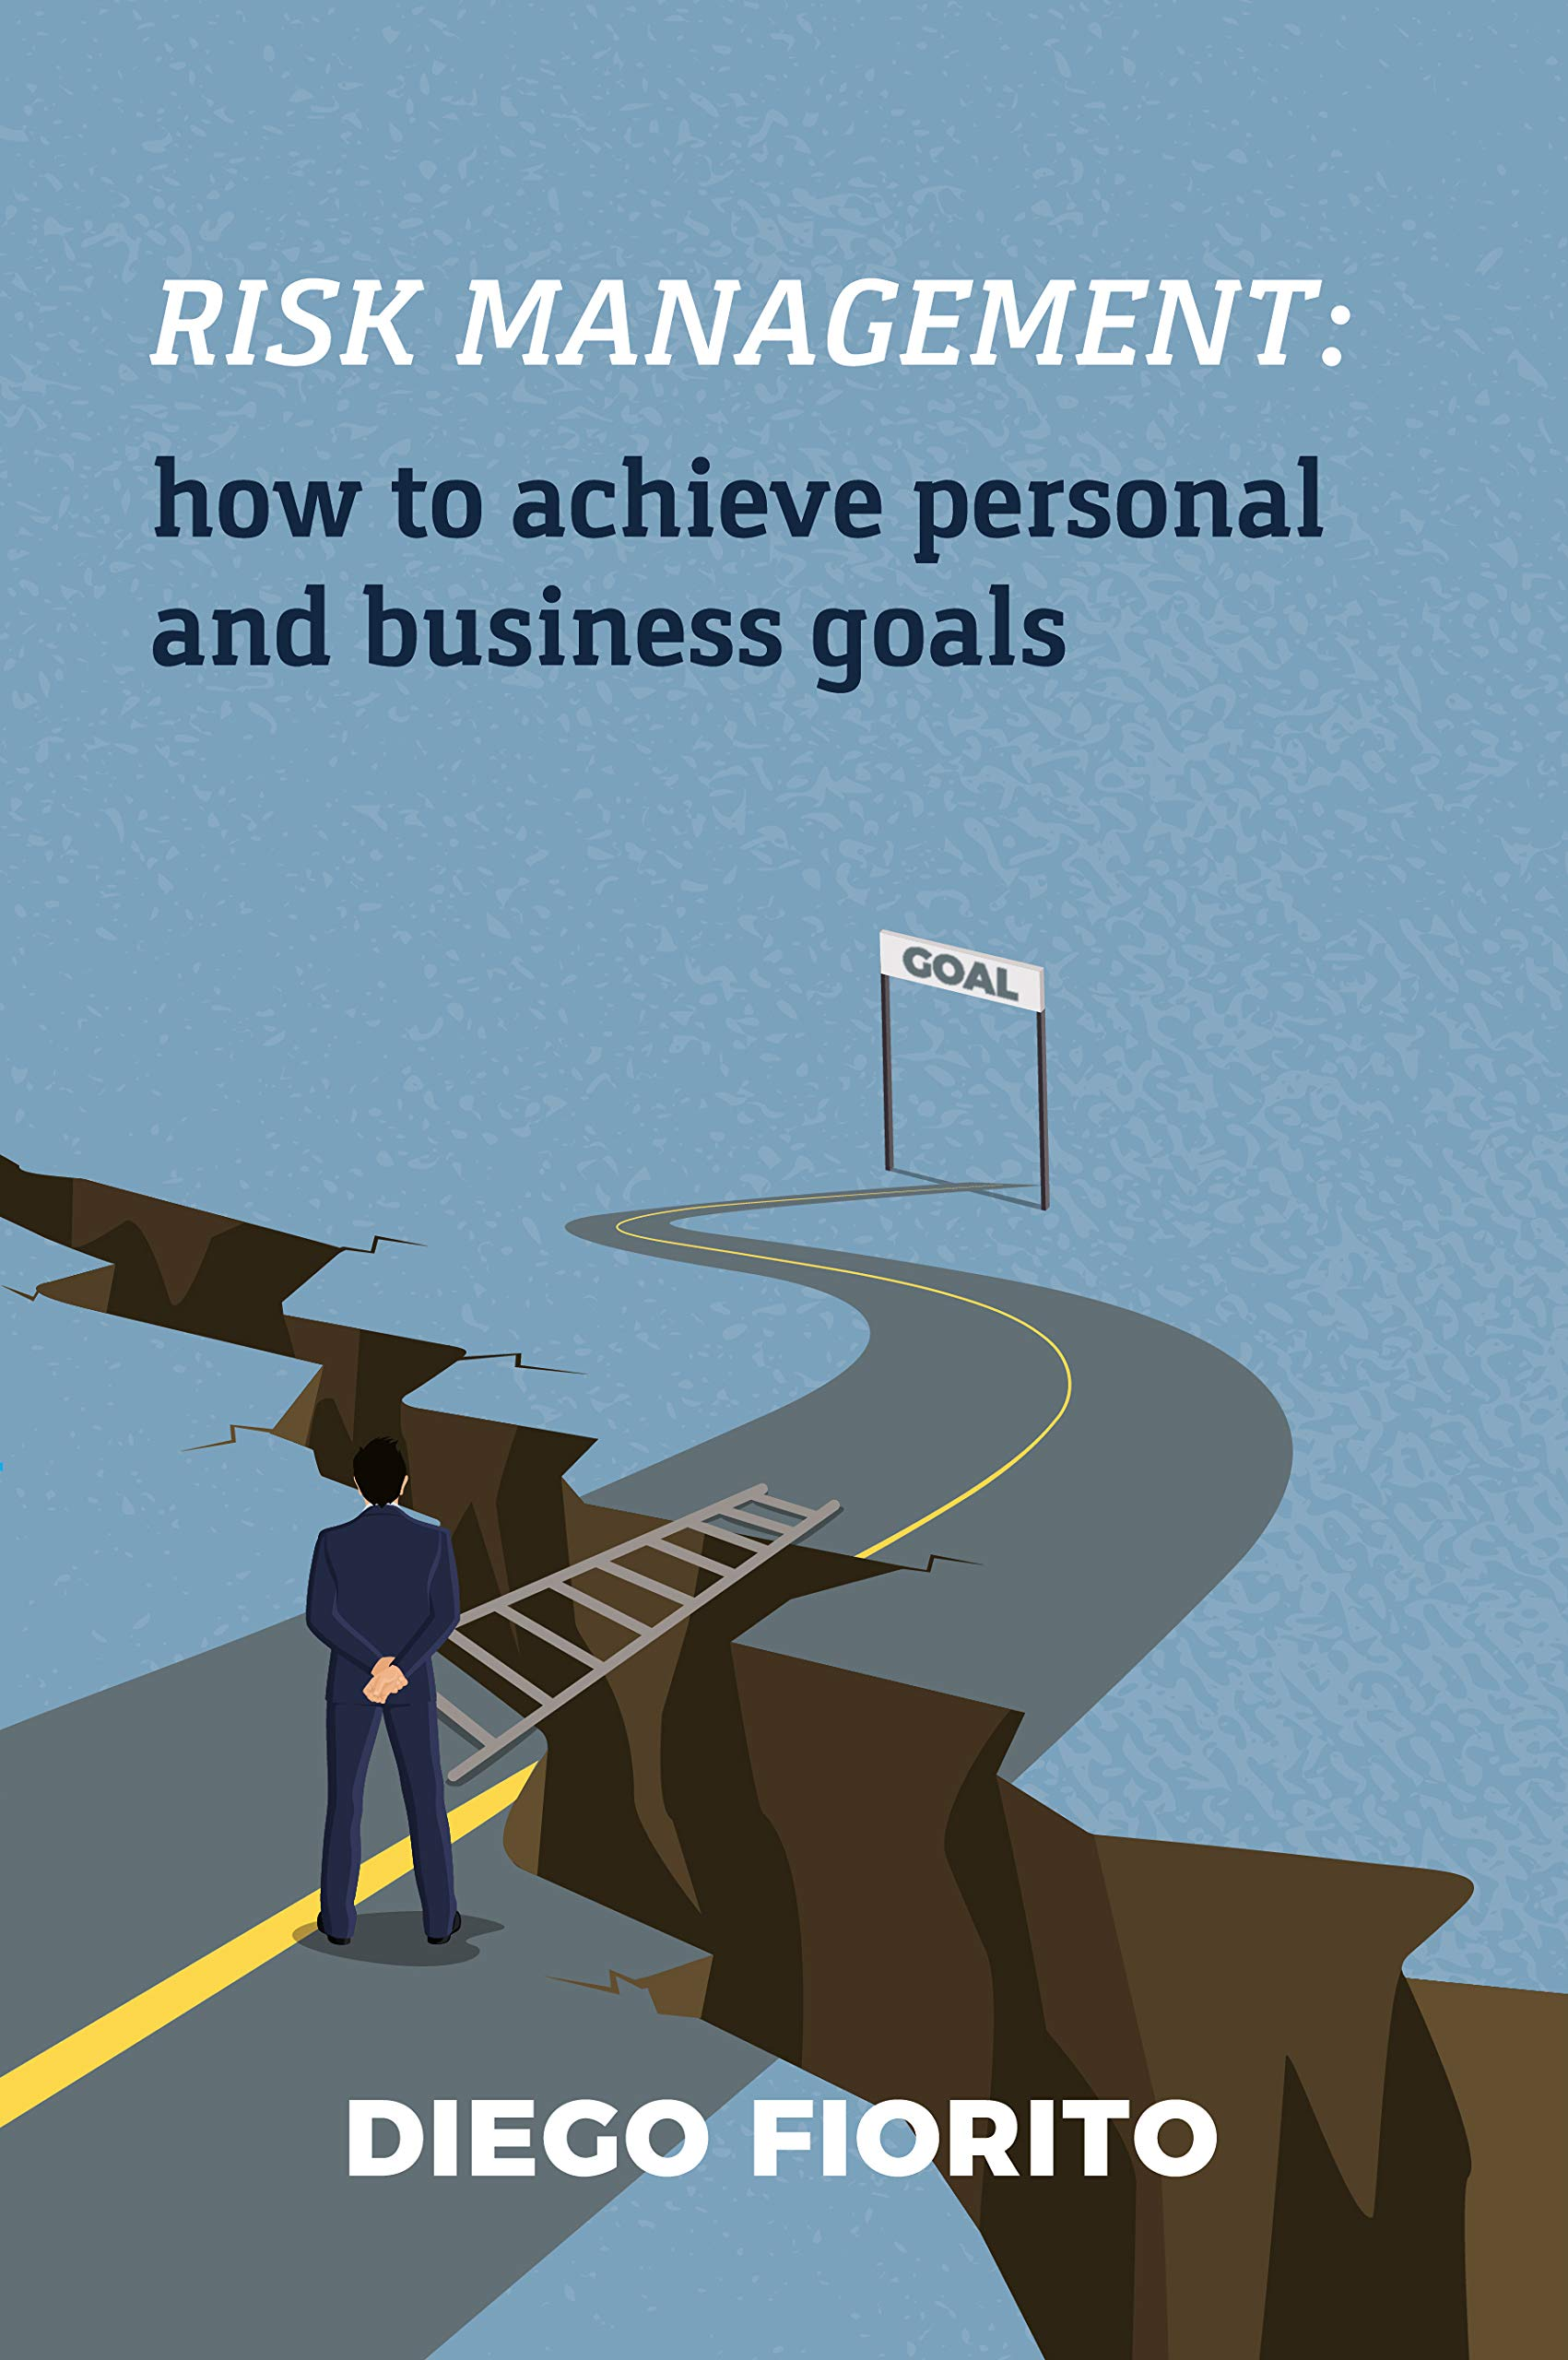 Risk Management: how to achieve personal and business goals